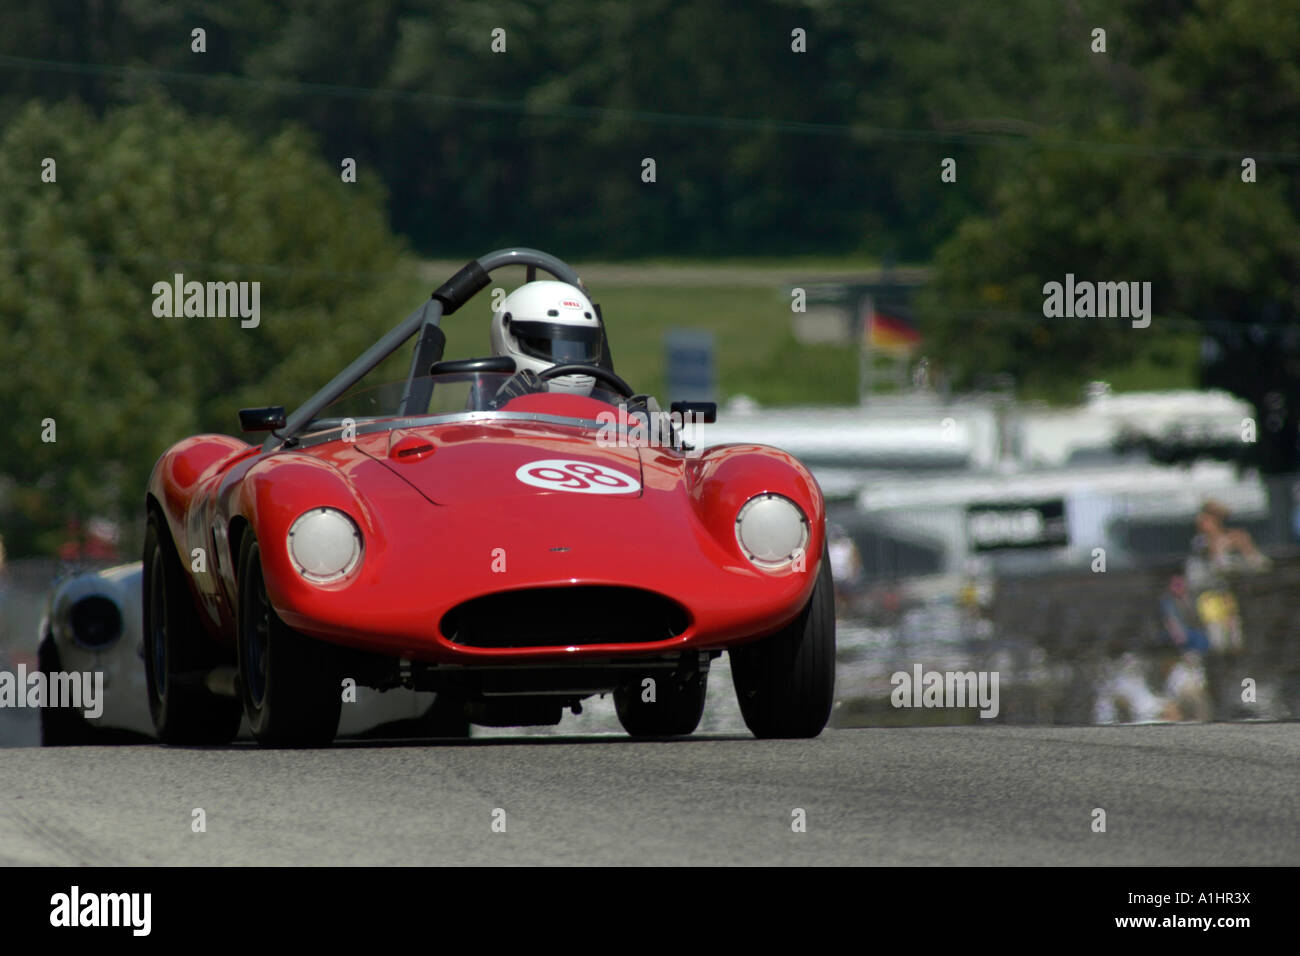 Bill Hart races his 1957 Devin Triumph at the Kohler International Challenge with Brian Redman 2006 - Stock Image